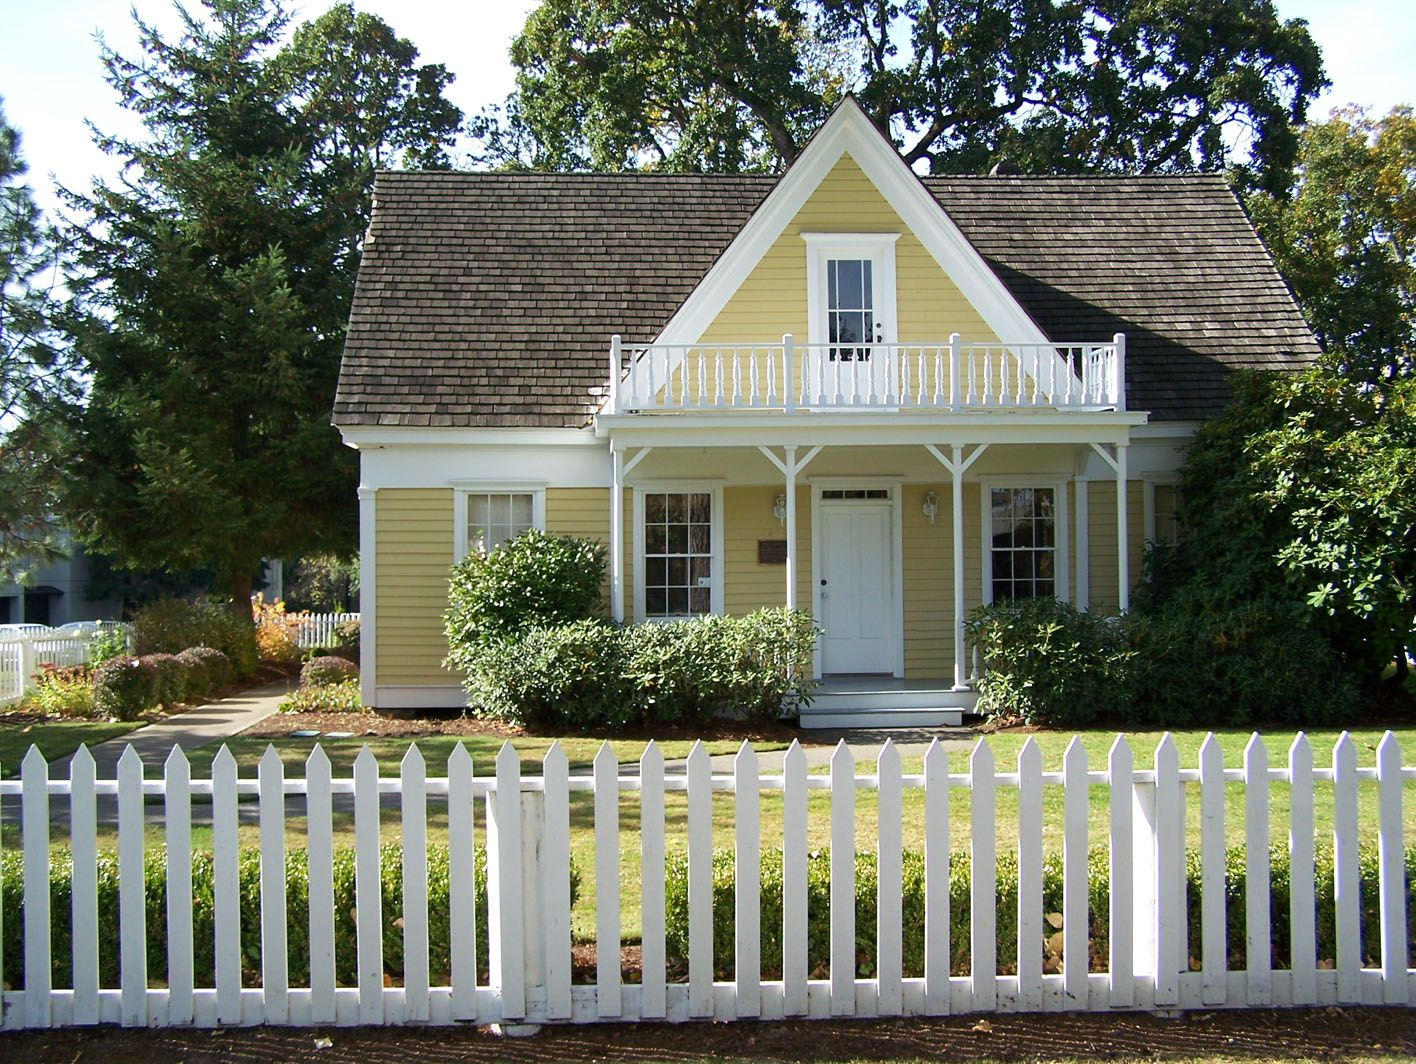 House With White Fence